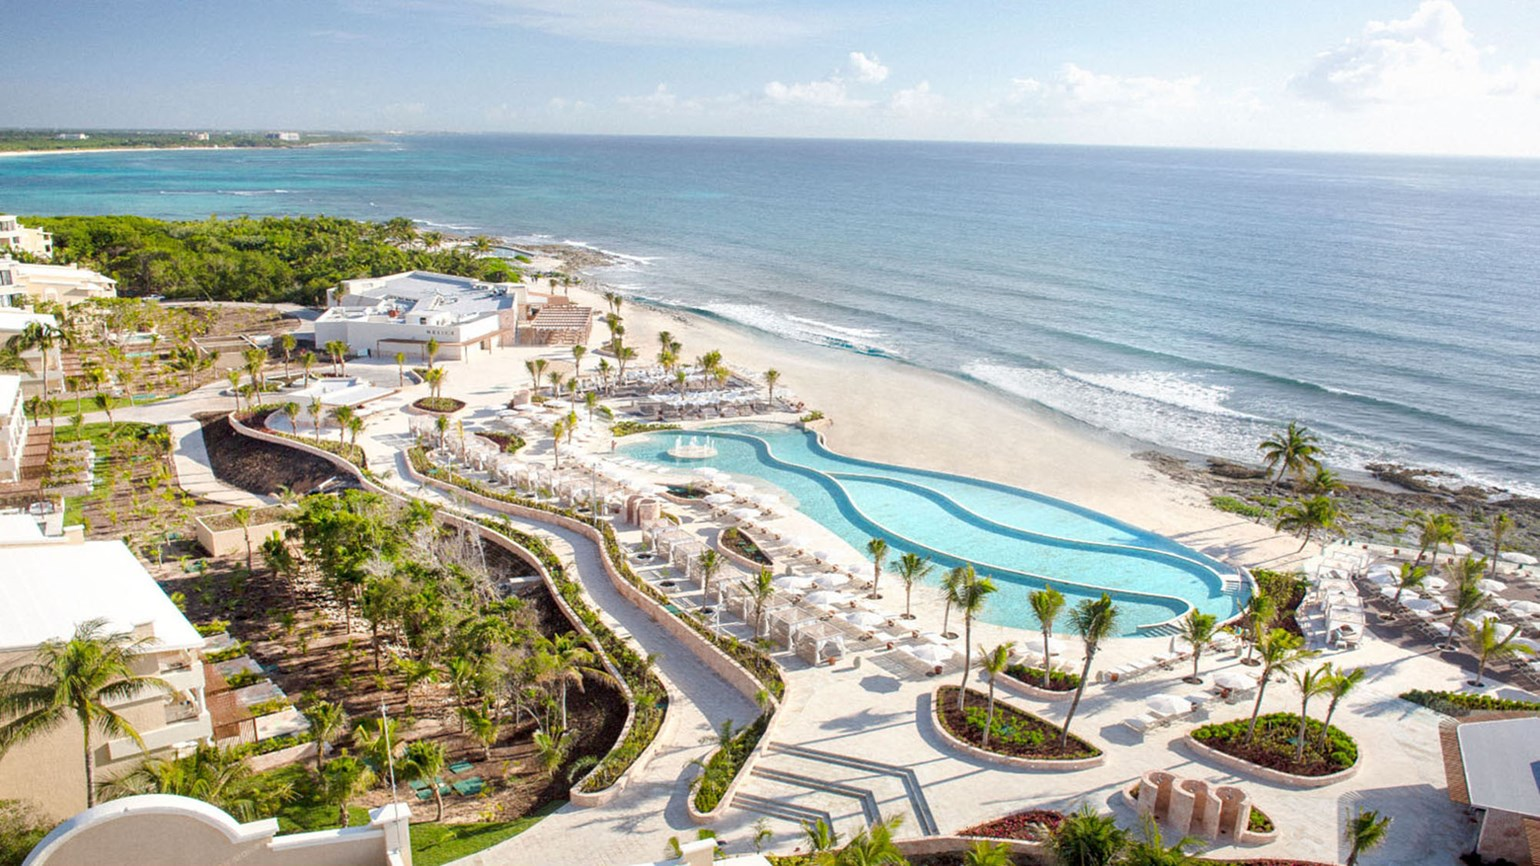 Palladium Hotel Group will reopen Riviera Maya resorts Oct. 2